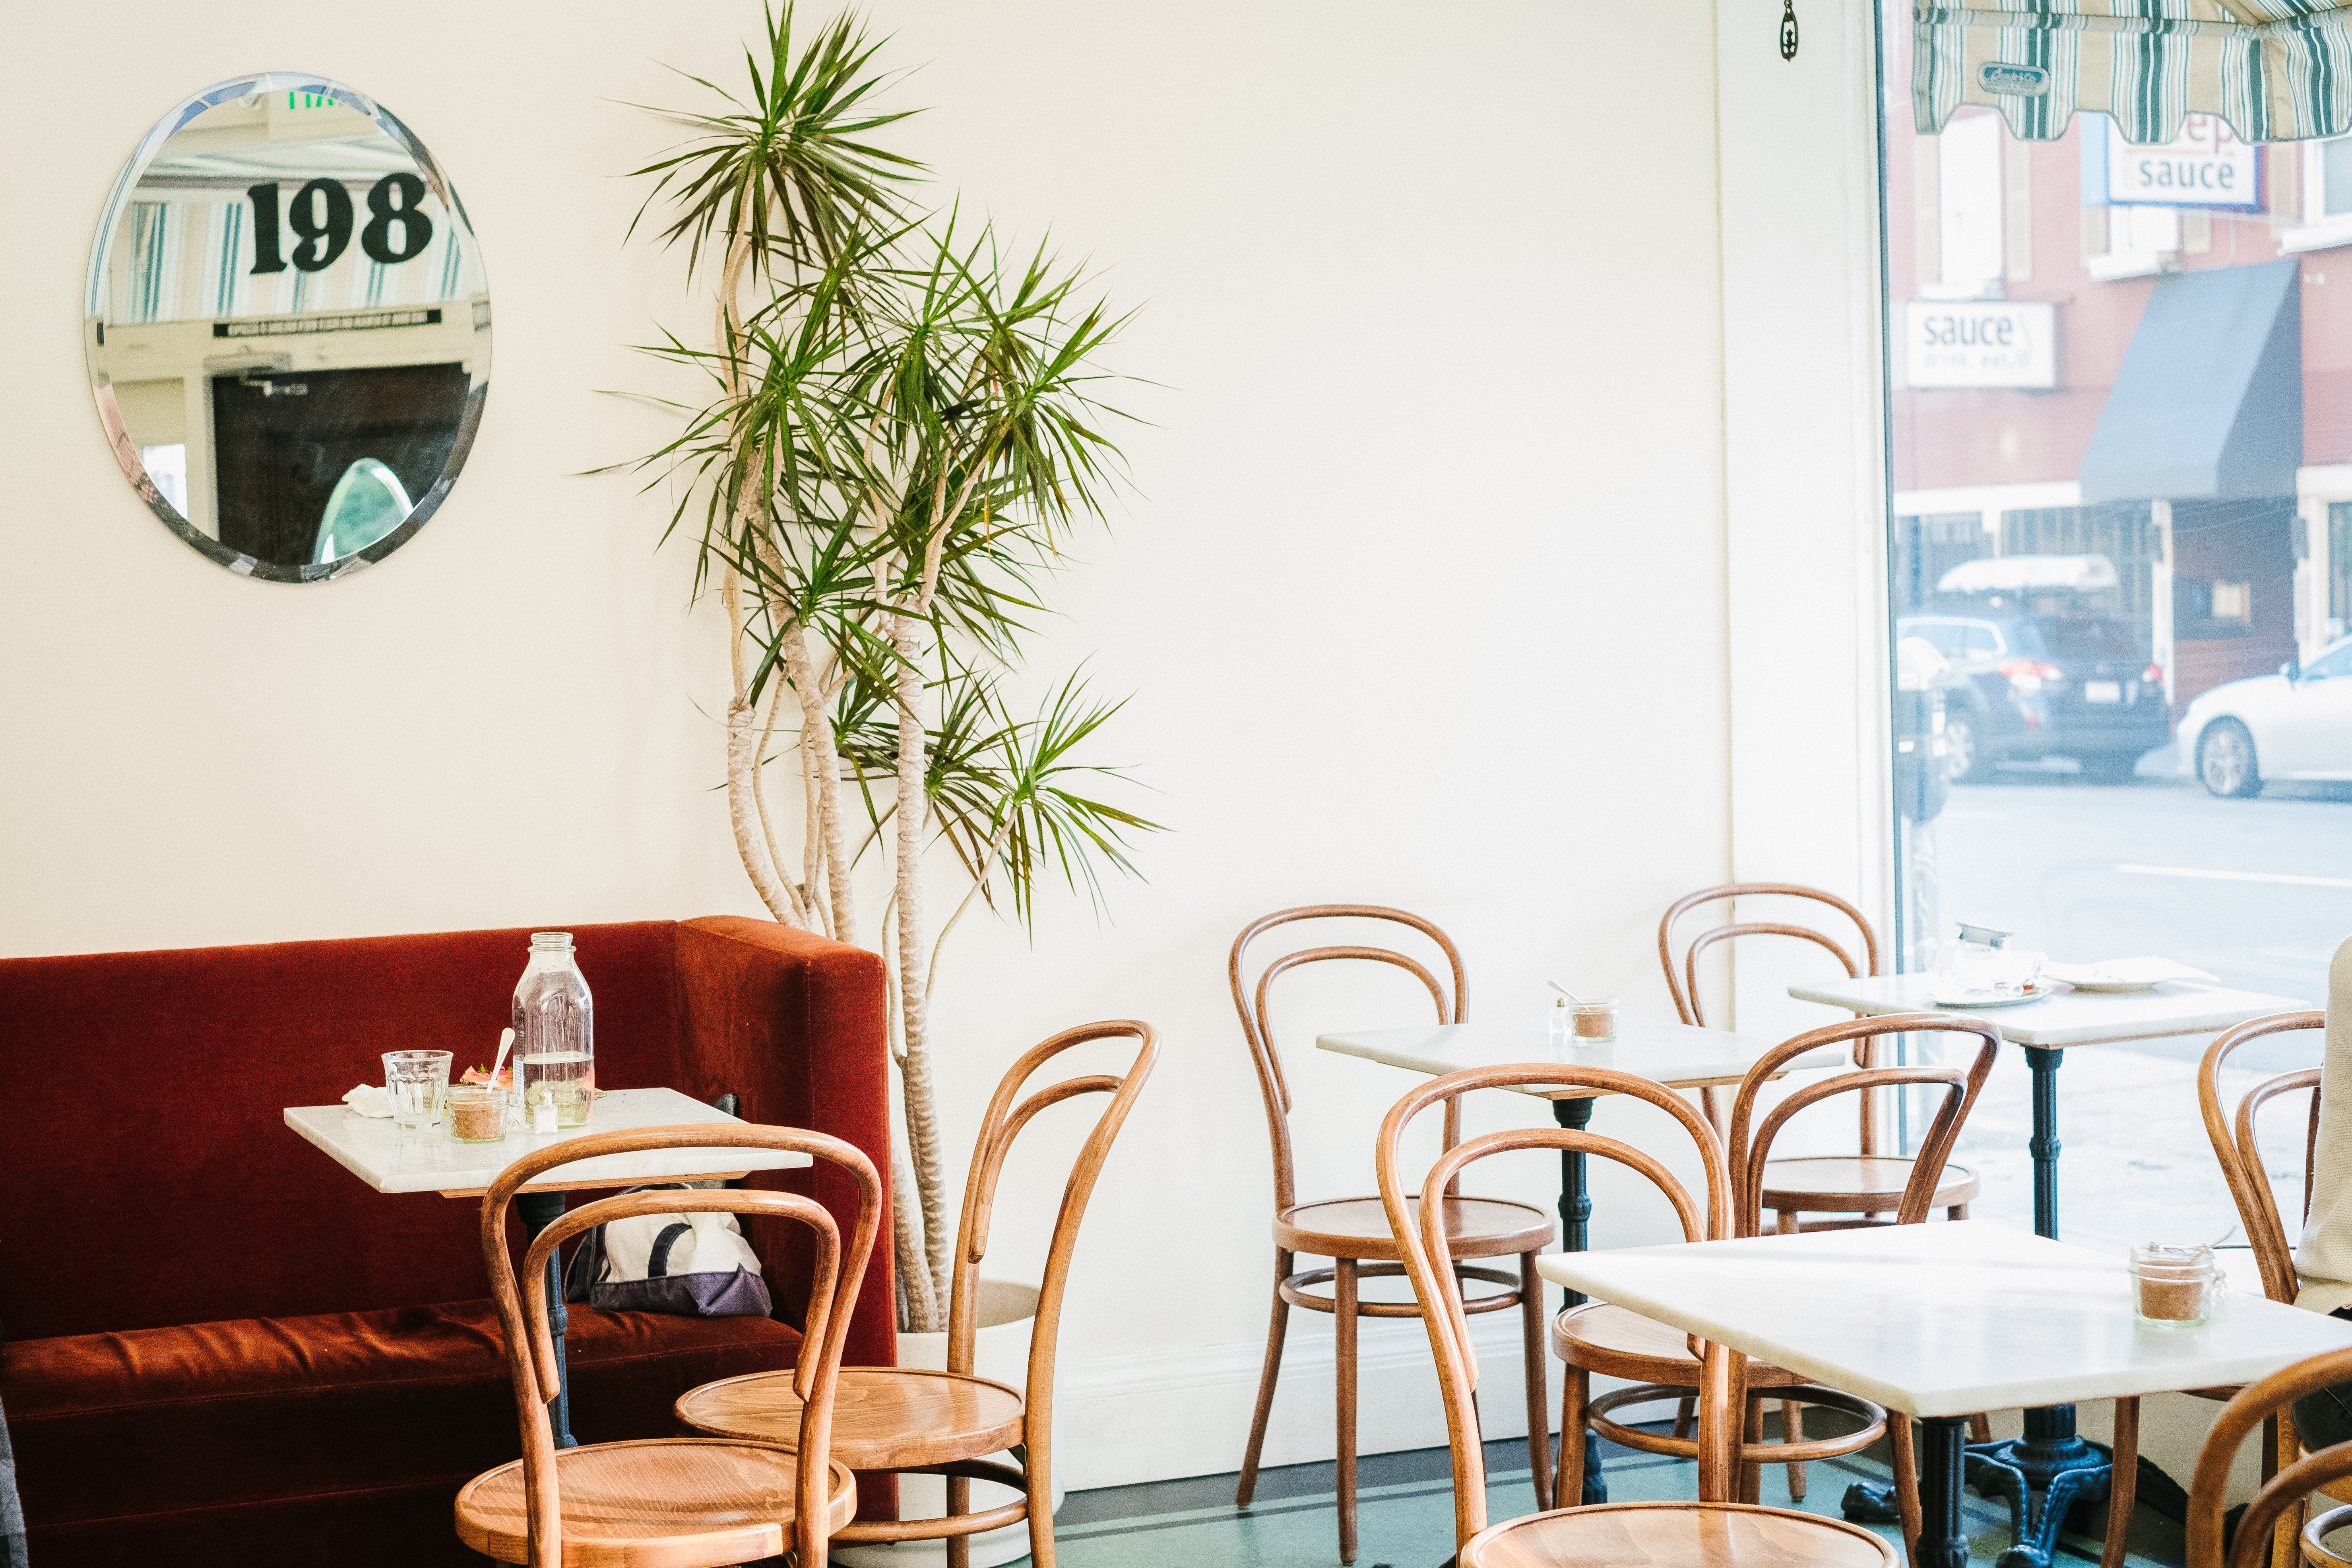 Where To Eat The Best Breakfast In San Francisco - San Francisco